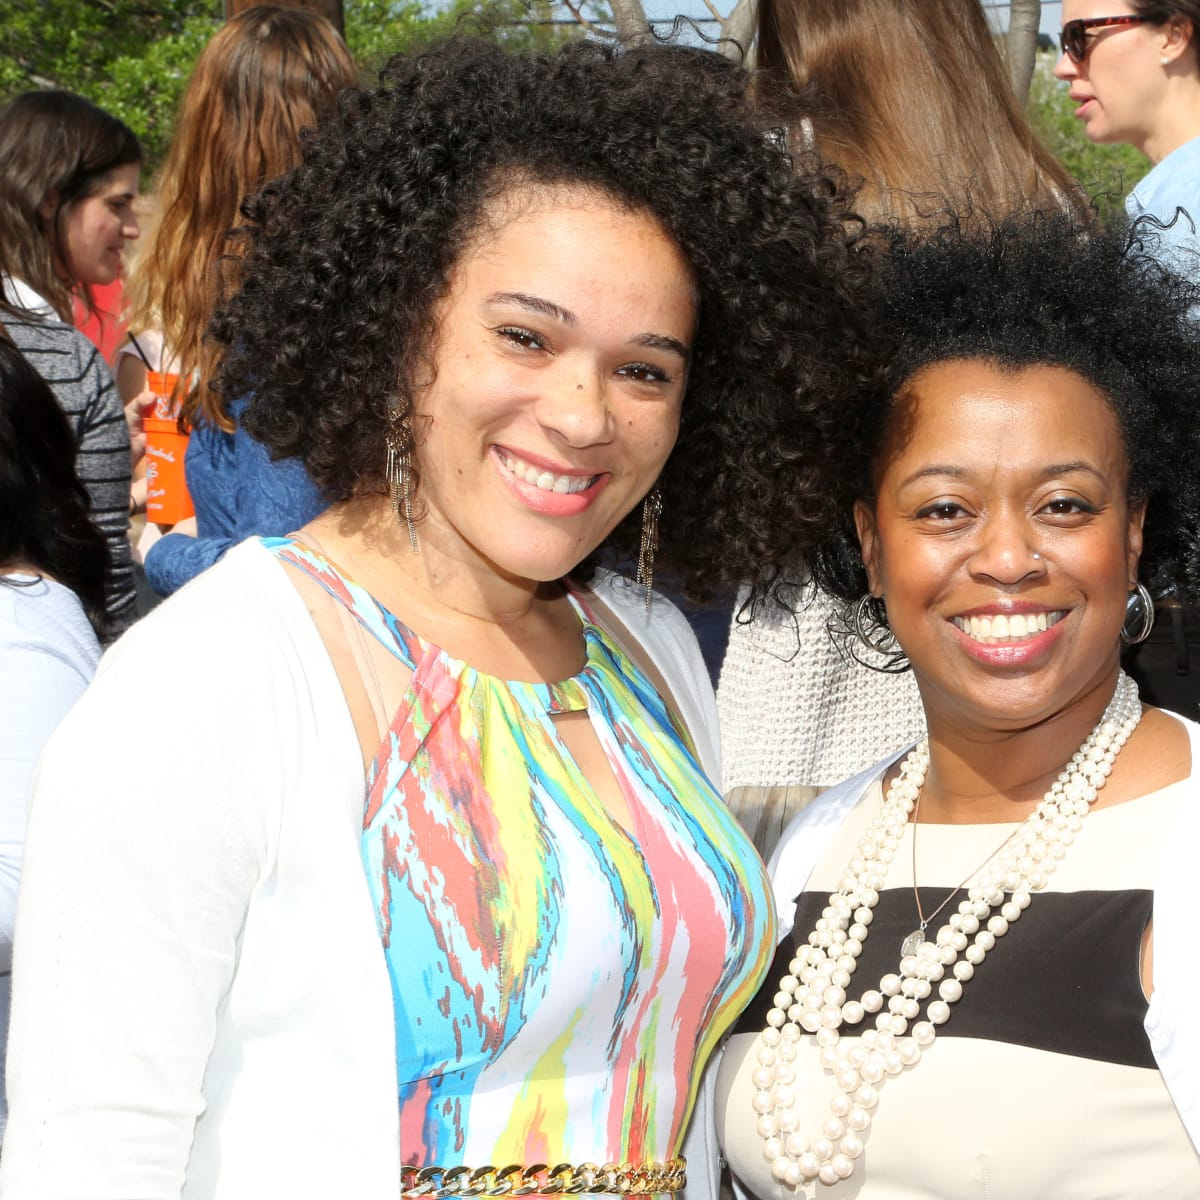 Women of Wardrobe Spring Fling, March 2016, Shanta Jamieson, Ja'Milla Lomas